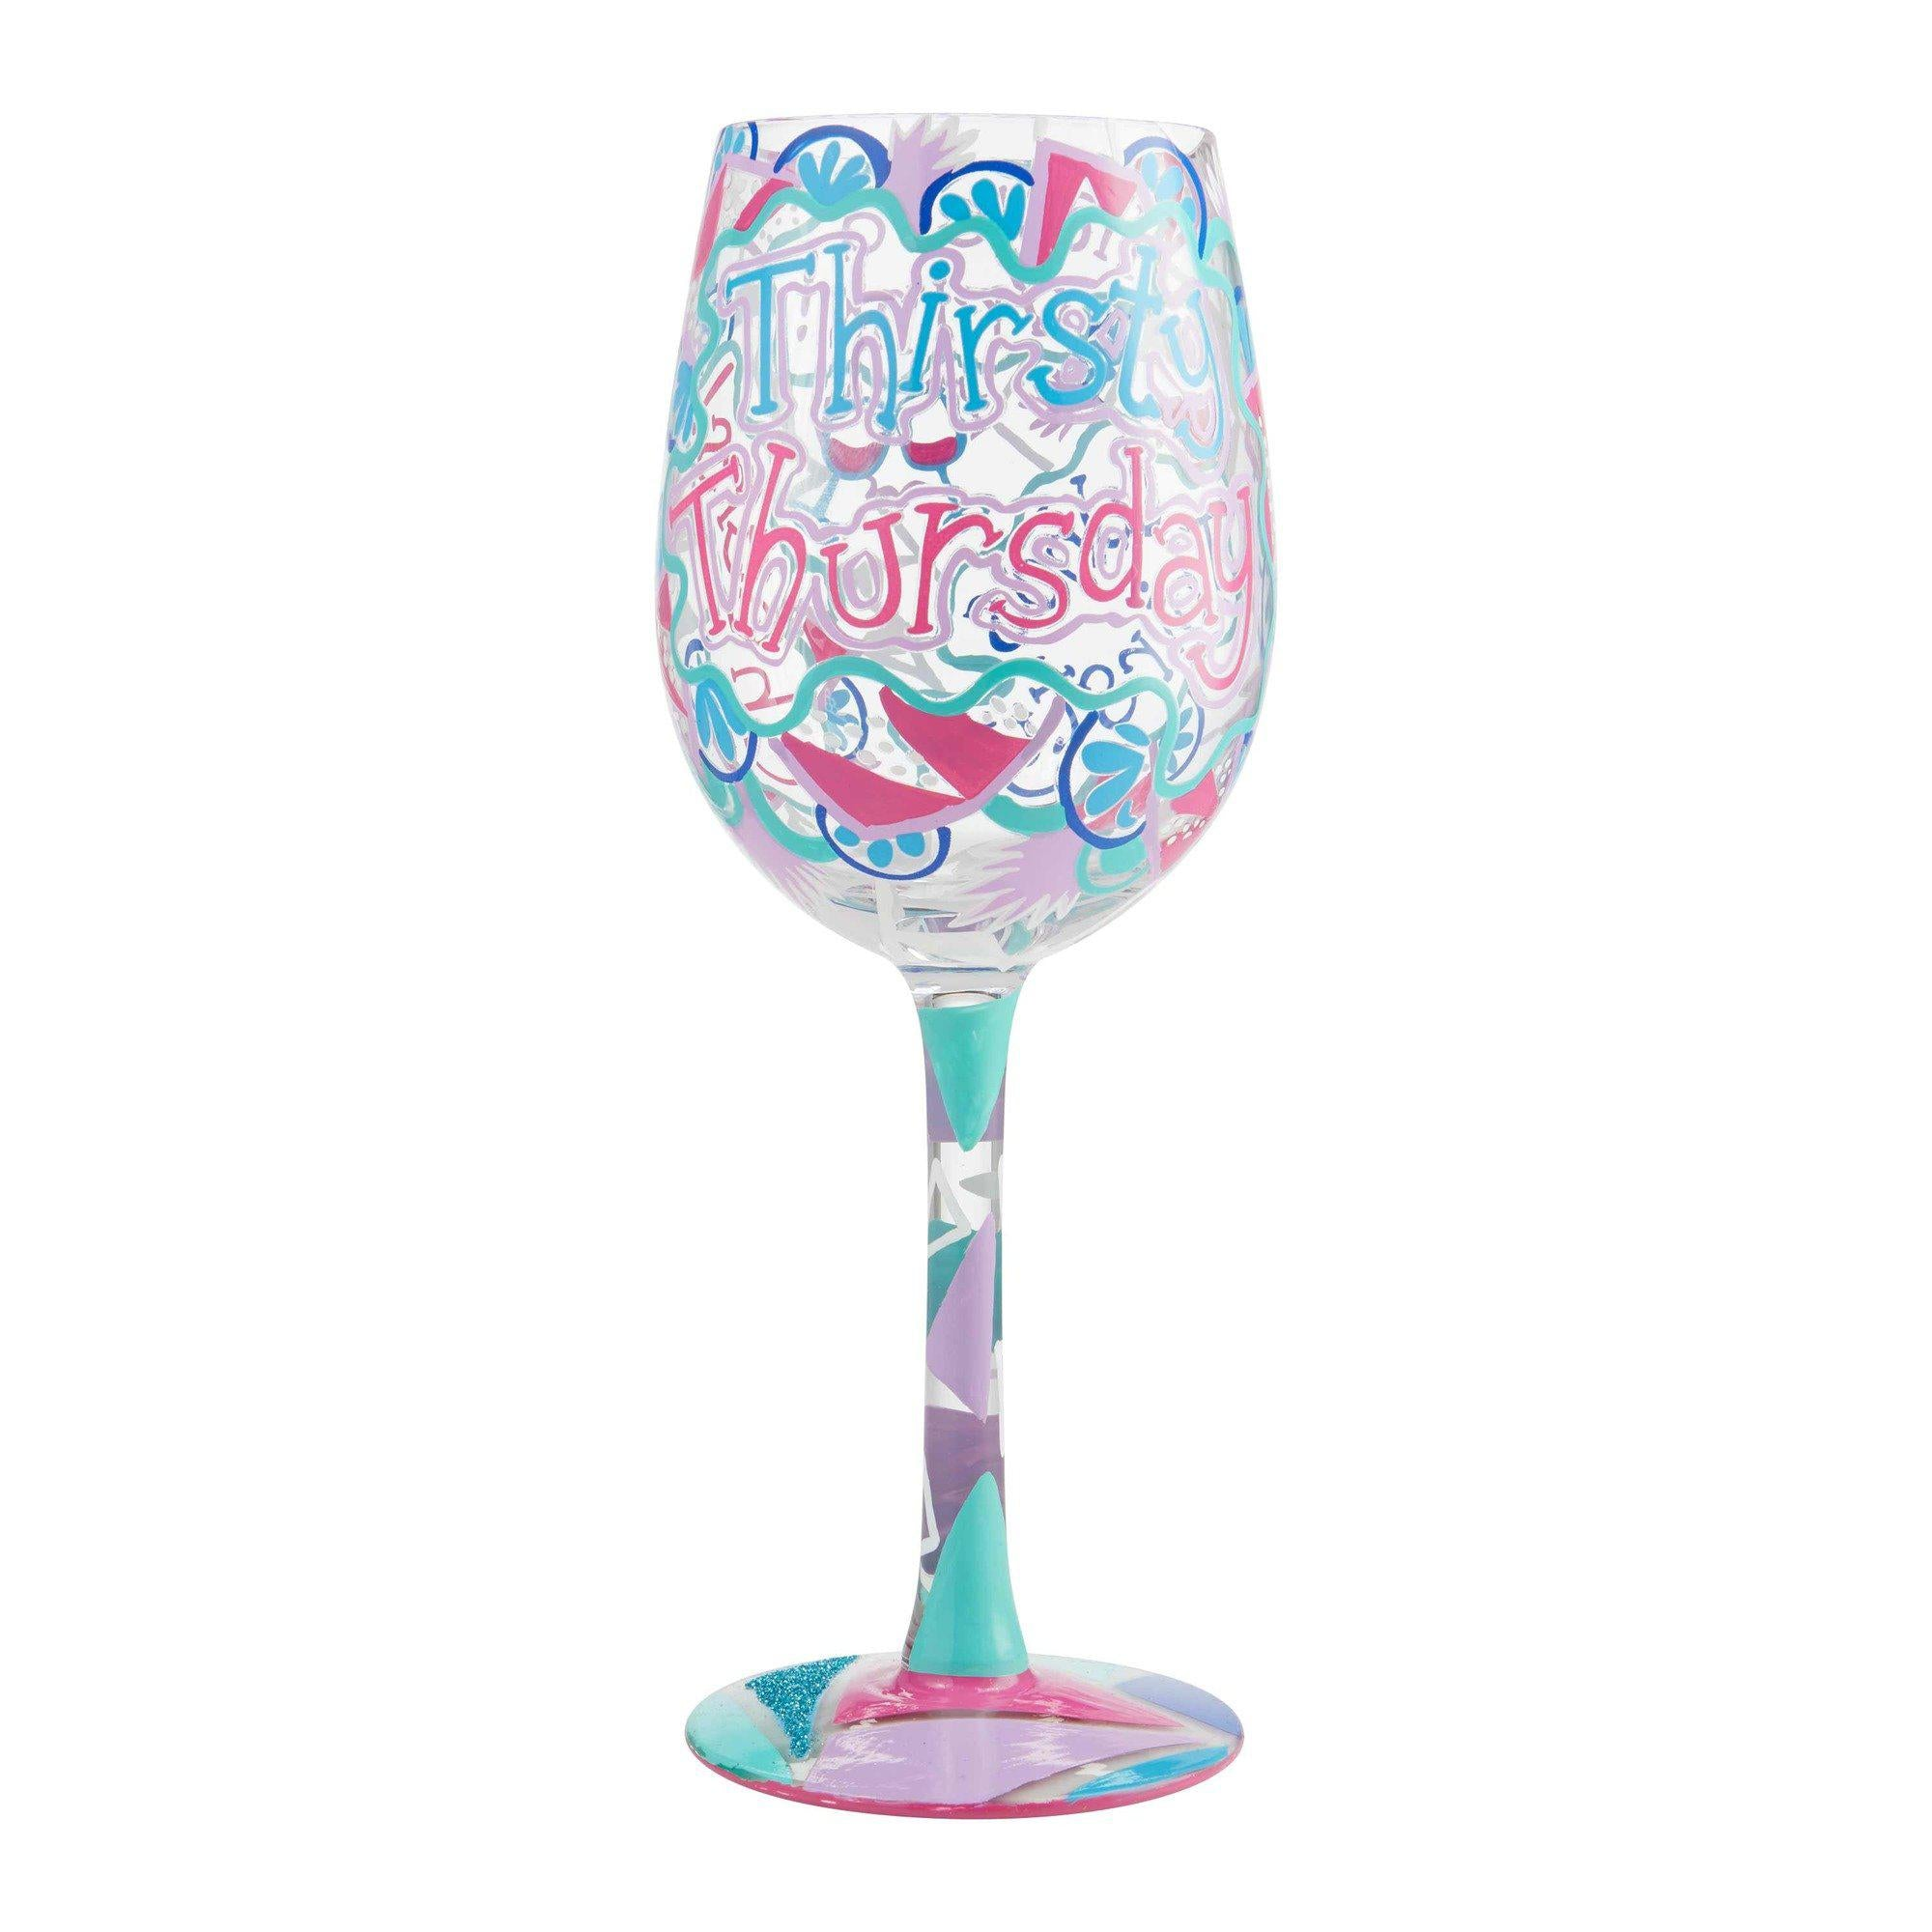 Thirsty Thursday Wine Glass by Lolita®-Wine Glass-Designs by Lolita® (Enesco)-Top Notch Gift Shop